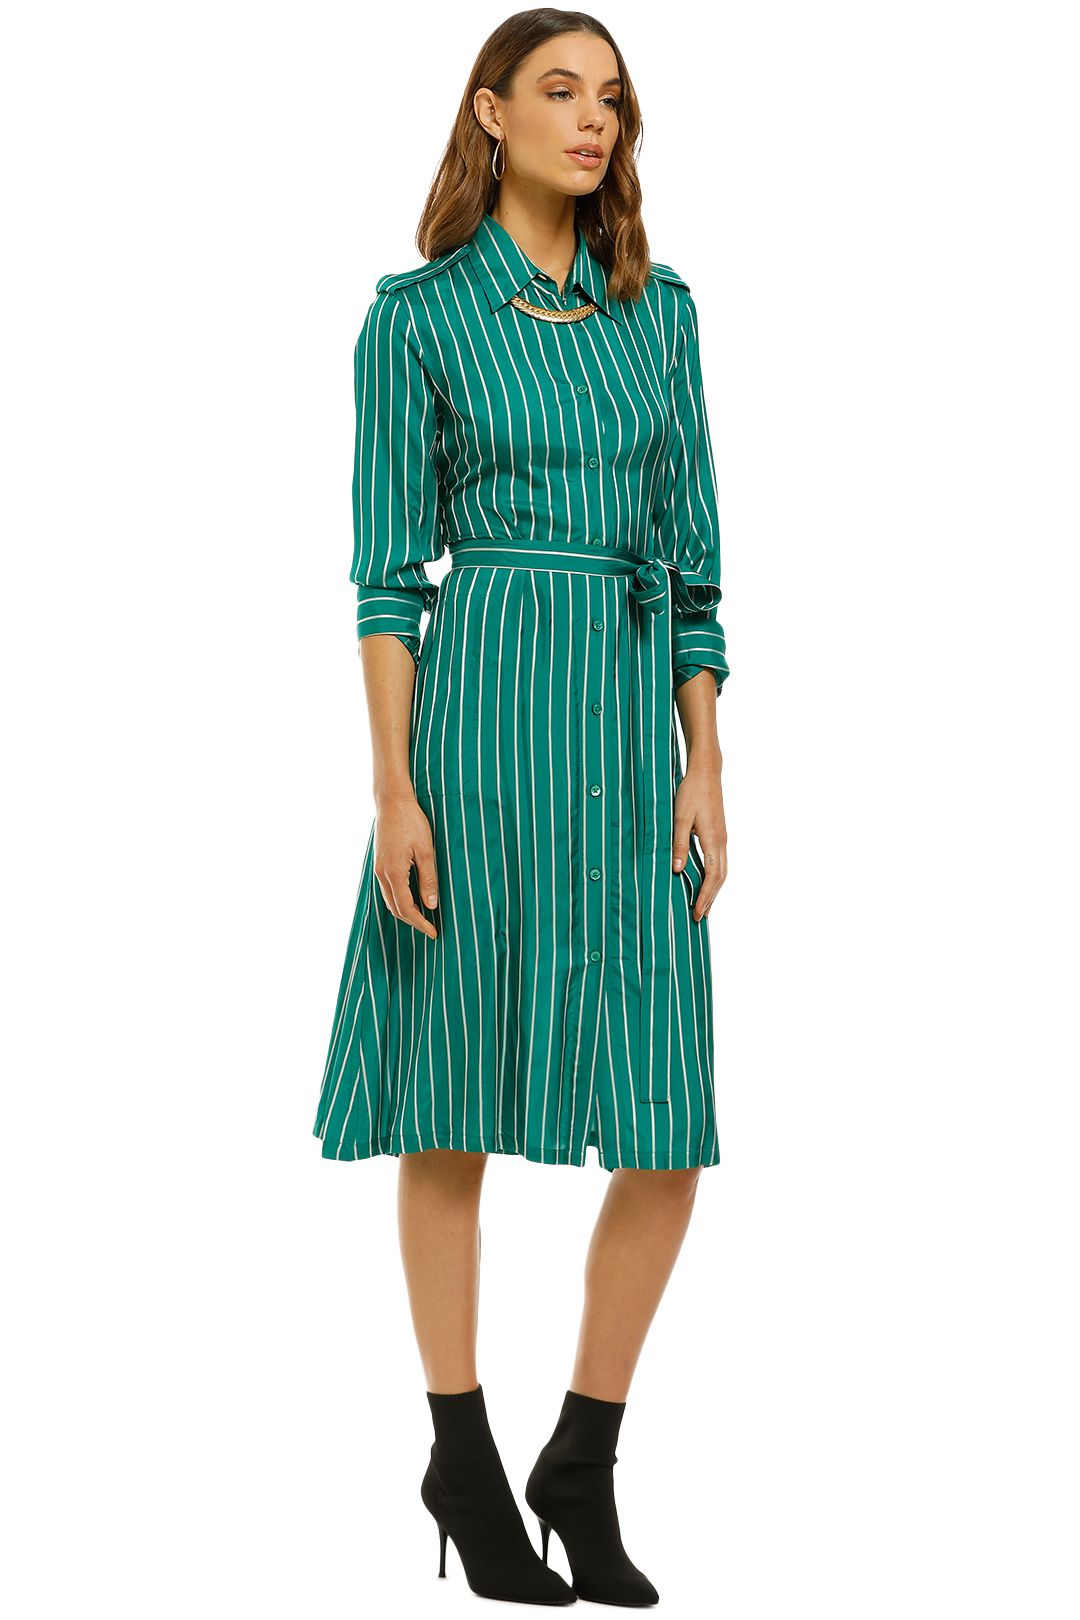 Scanlan Theodore - Stripe Shirt Dress - Emerald - Side